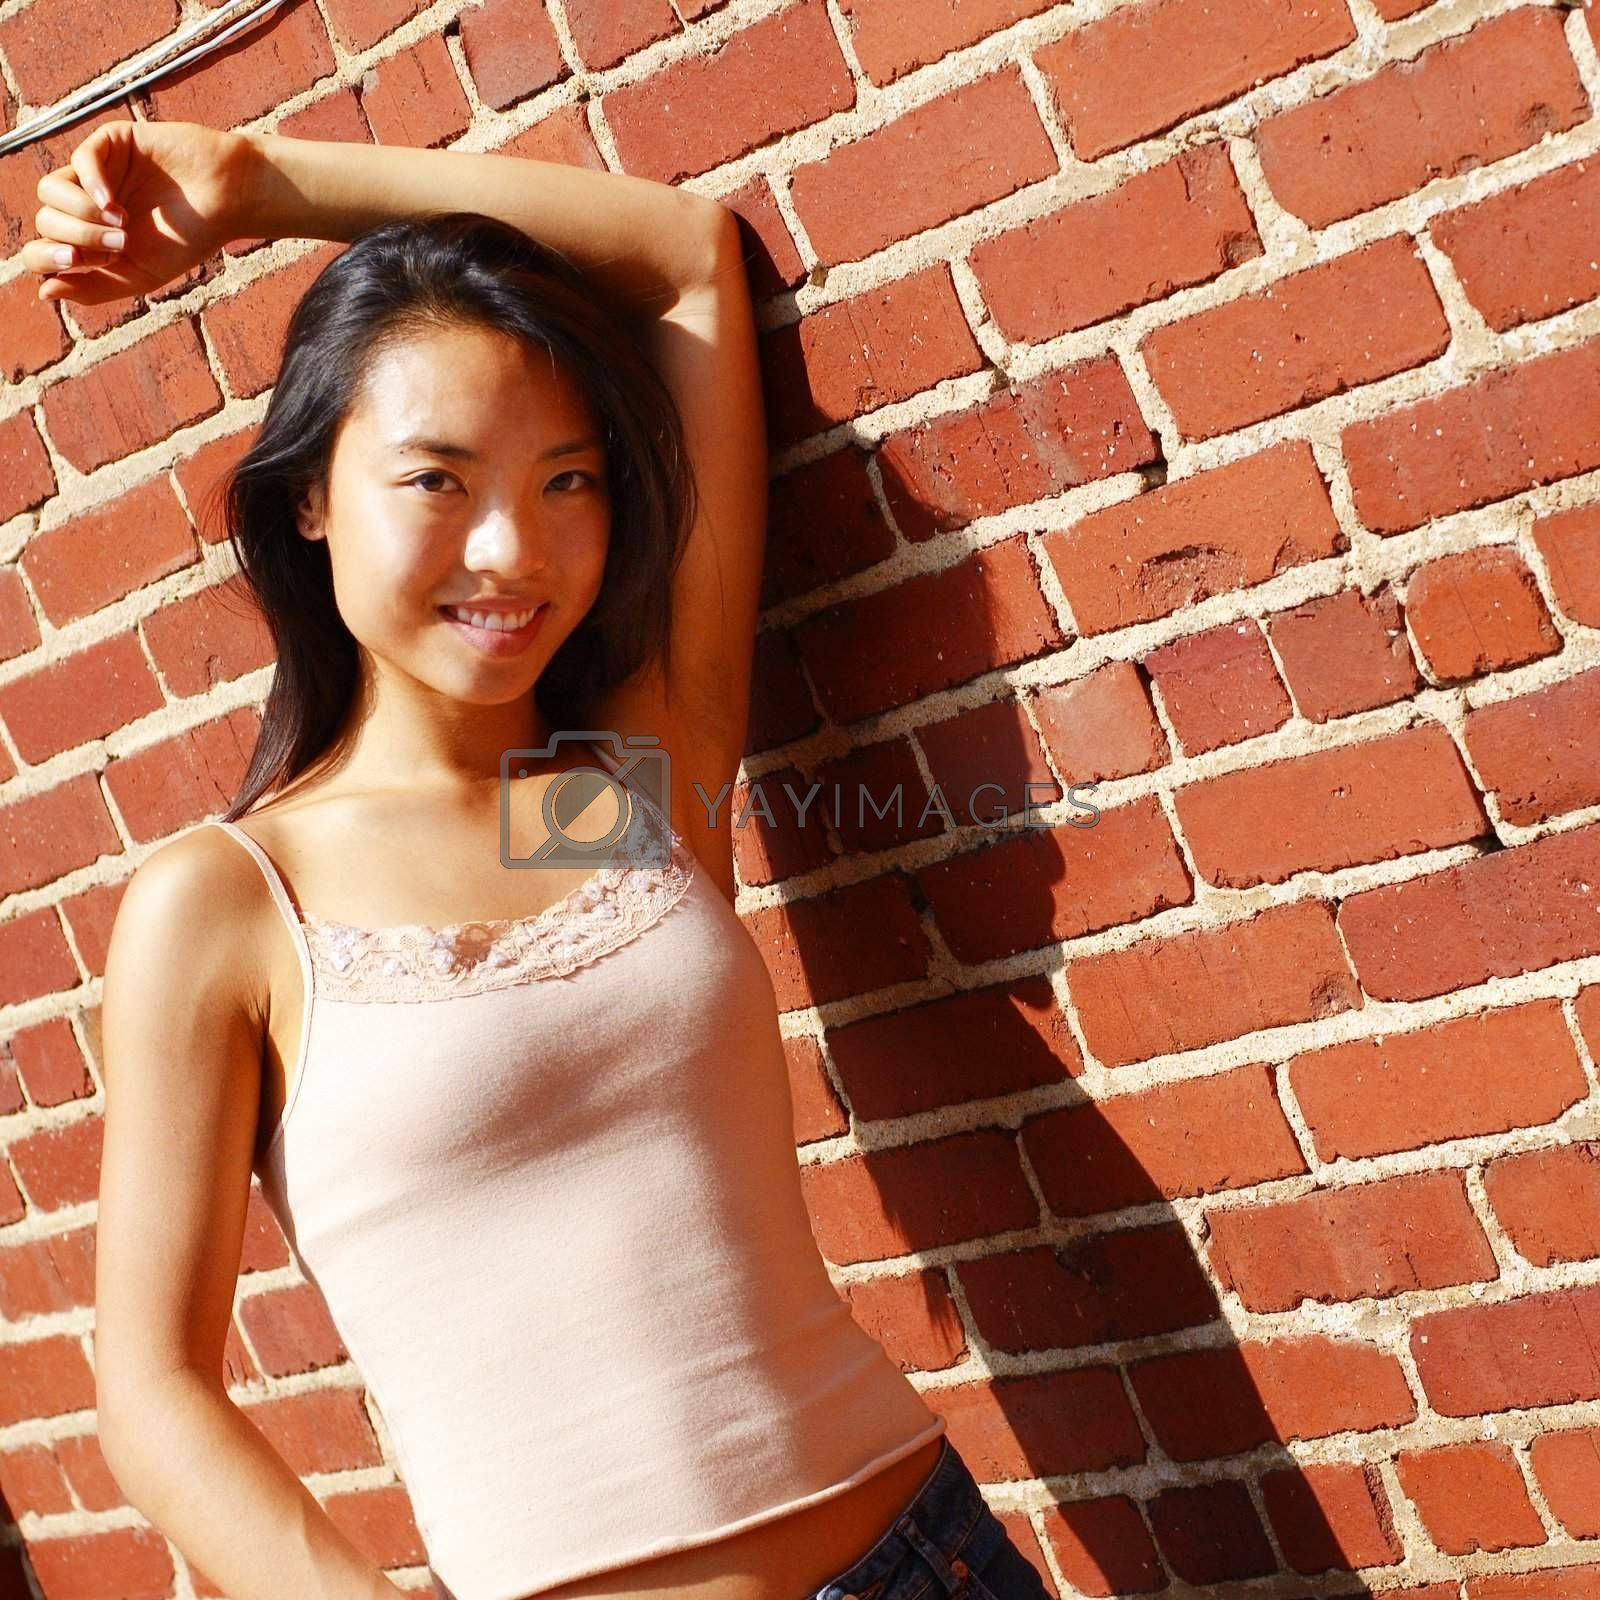 Fashionable young woman against red brick wall.